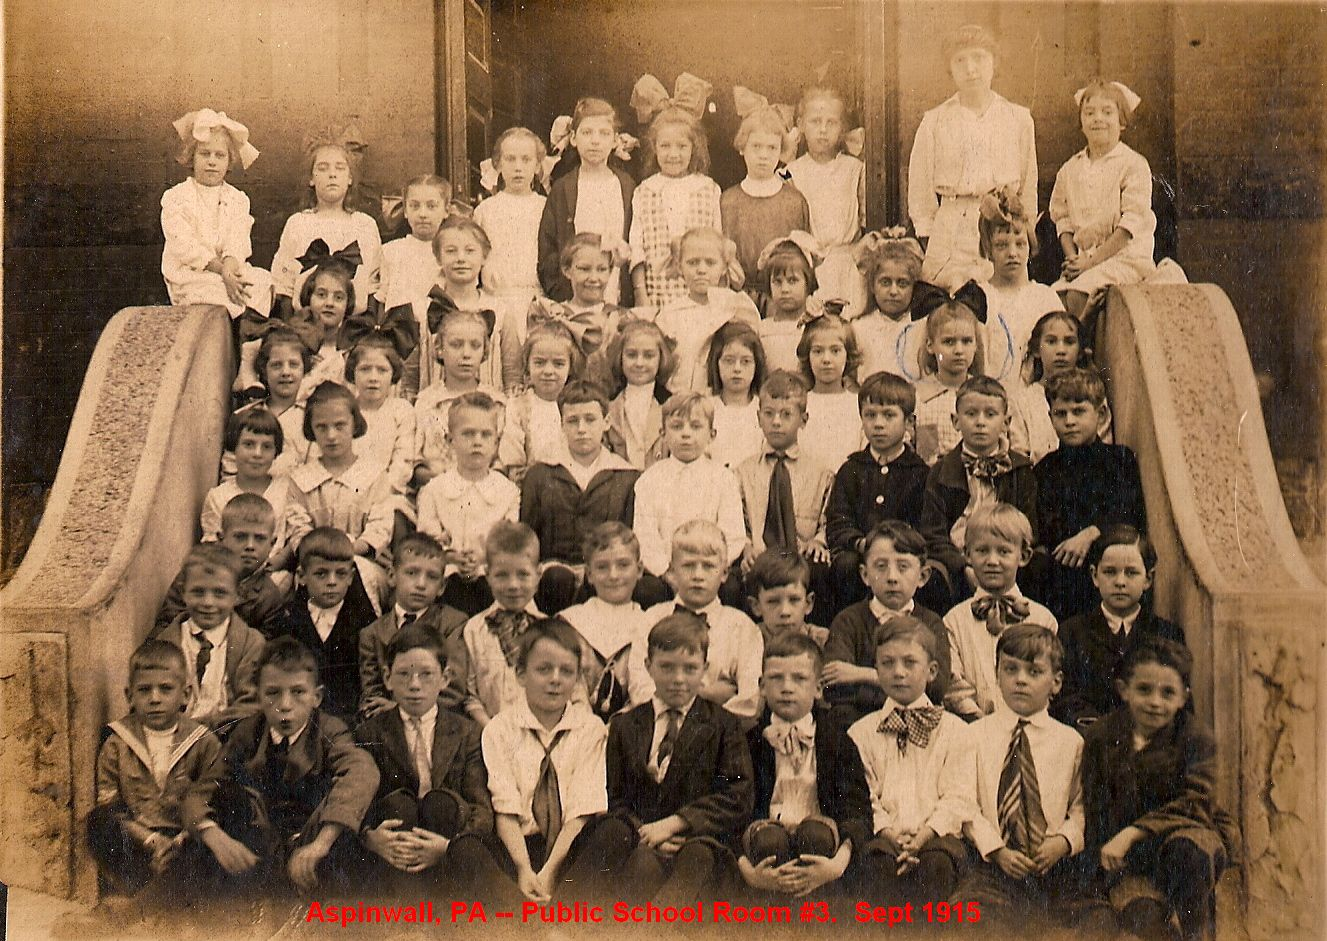 09-Aspinwall-PA-Public-School-Room-3-Sept-1915 (1).jpg